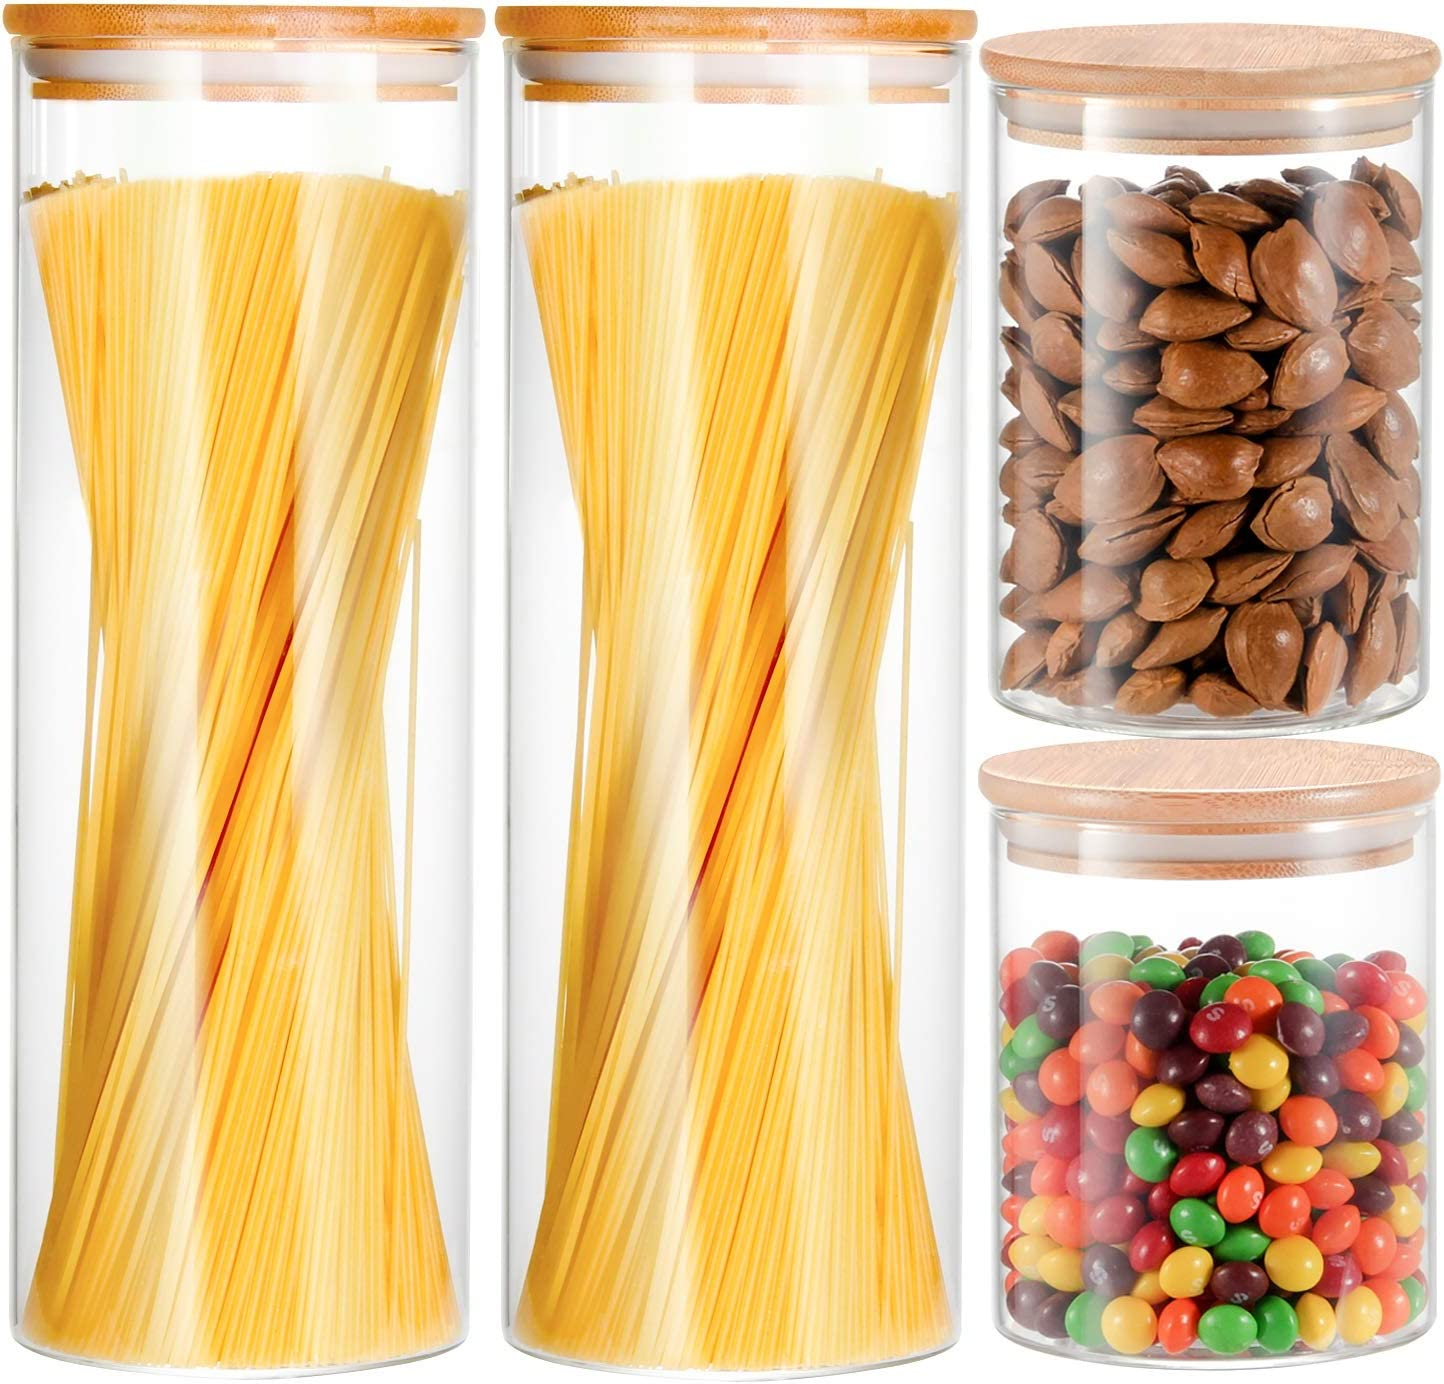 Glass Storage Containers, YULEER Glass Jar with Bamboo Lids, Airtight food Storage Canister for Spaghetti, Candy, Cookie, Cereal, Rice - Set of 4